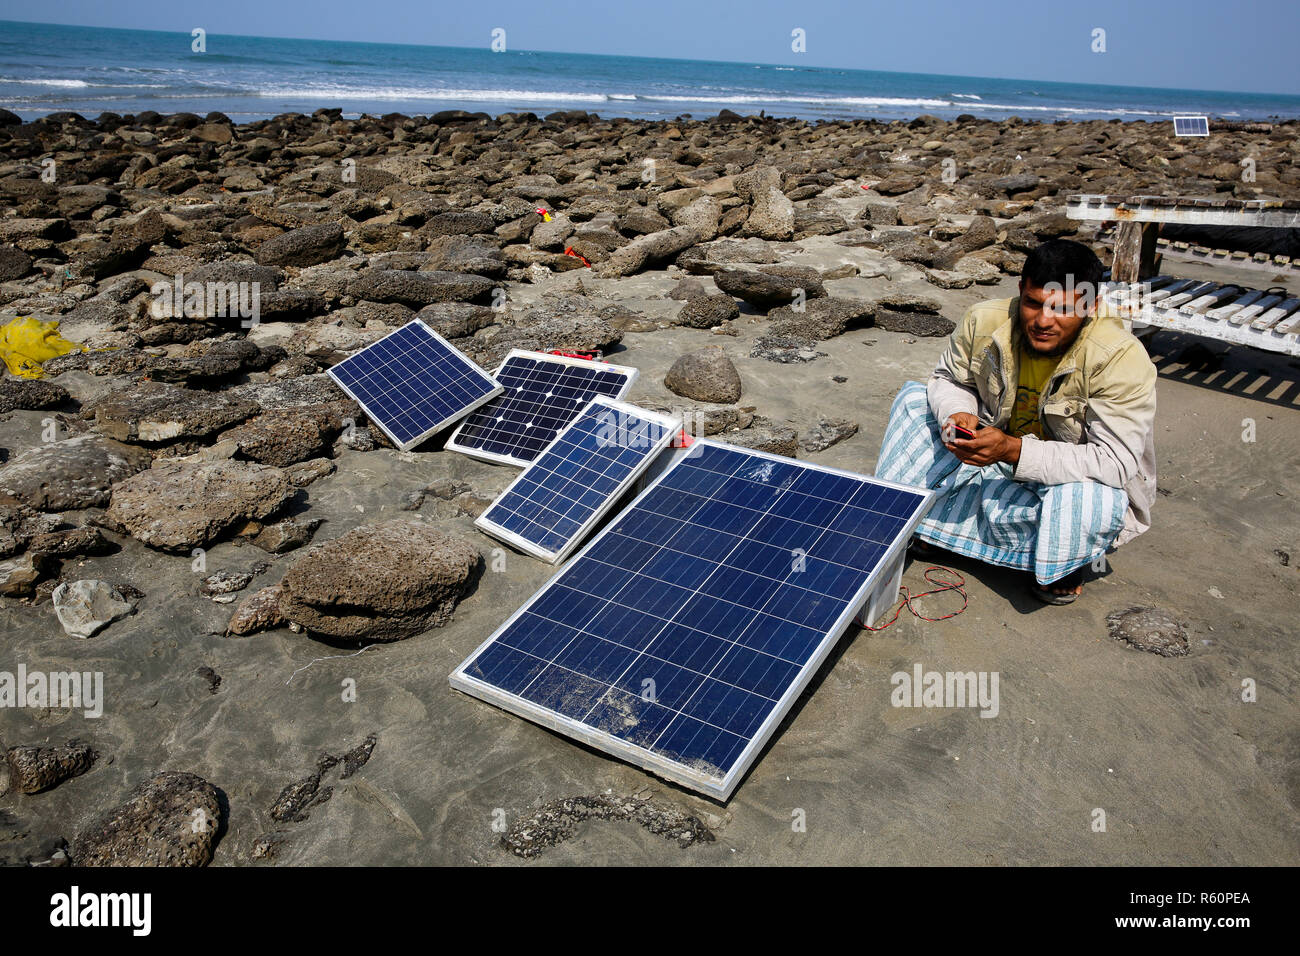 Solar panels lie under the sun on the sea beach at Saint Martin Island. Cox's Bazar, Bangladesh. Stock Photo